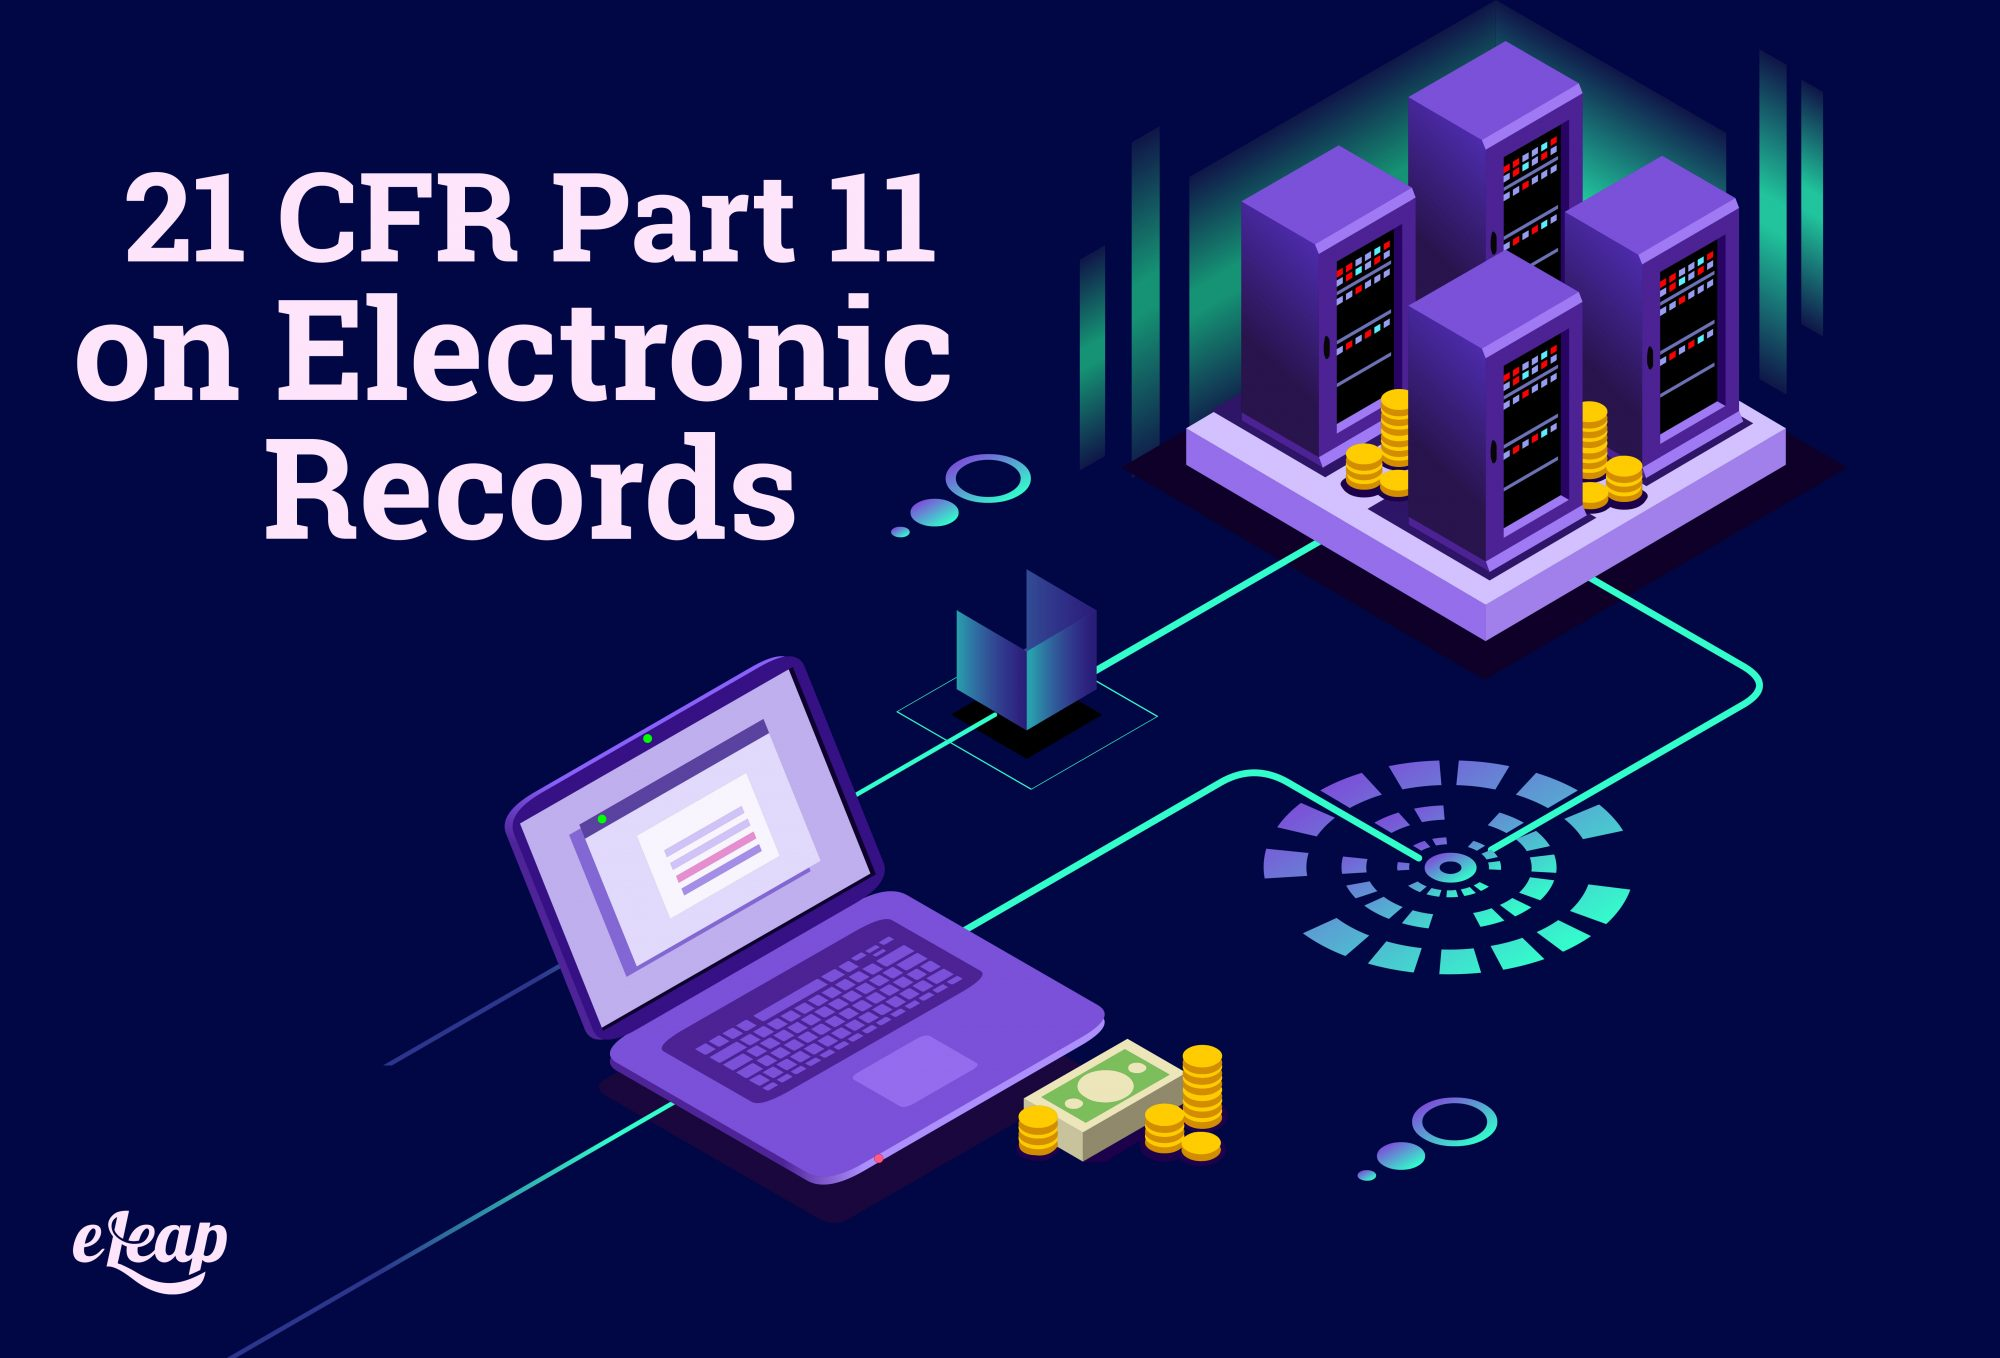 21 CFR Part 11 on Electronic Records